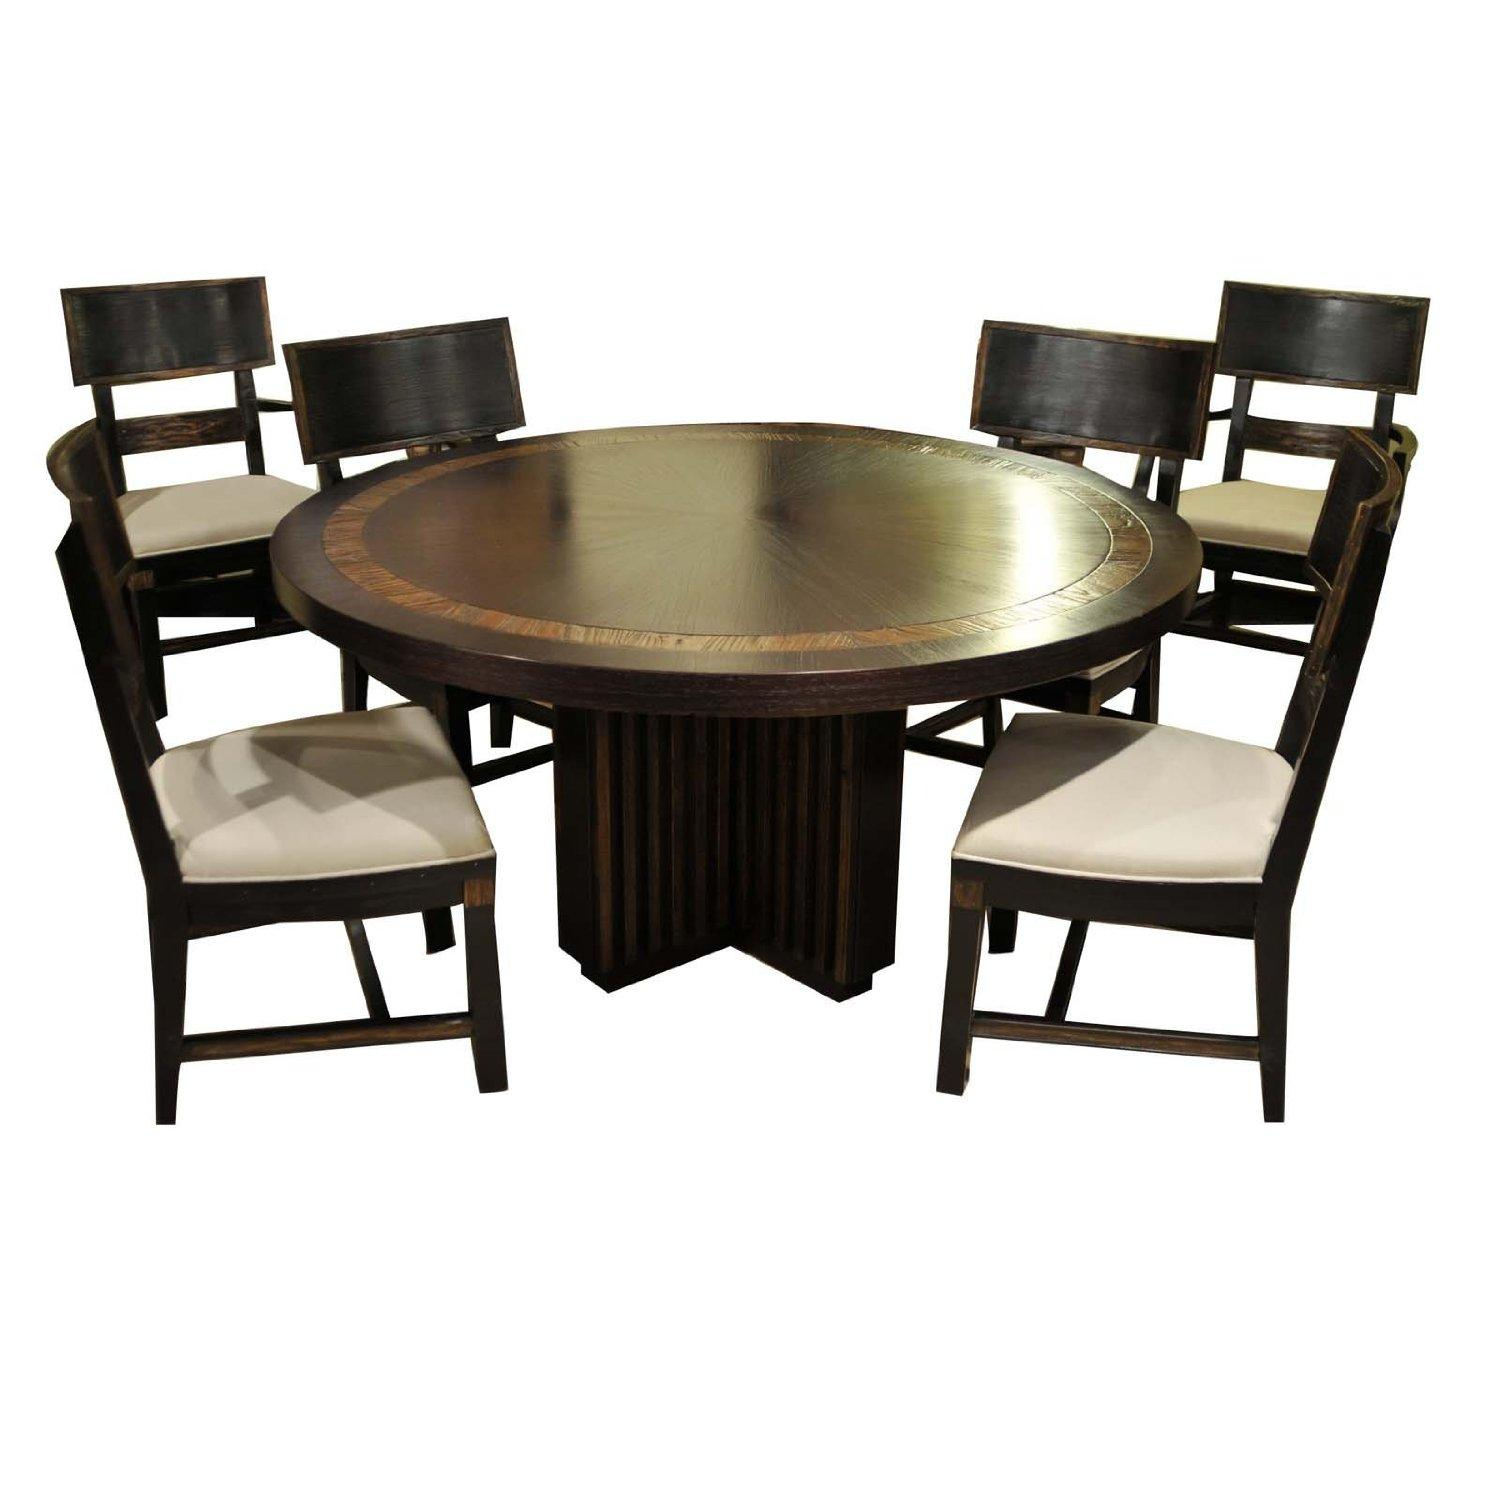 transitional dining chairs xmen guy in wheelchair round table and 6 chairish